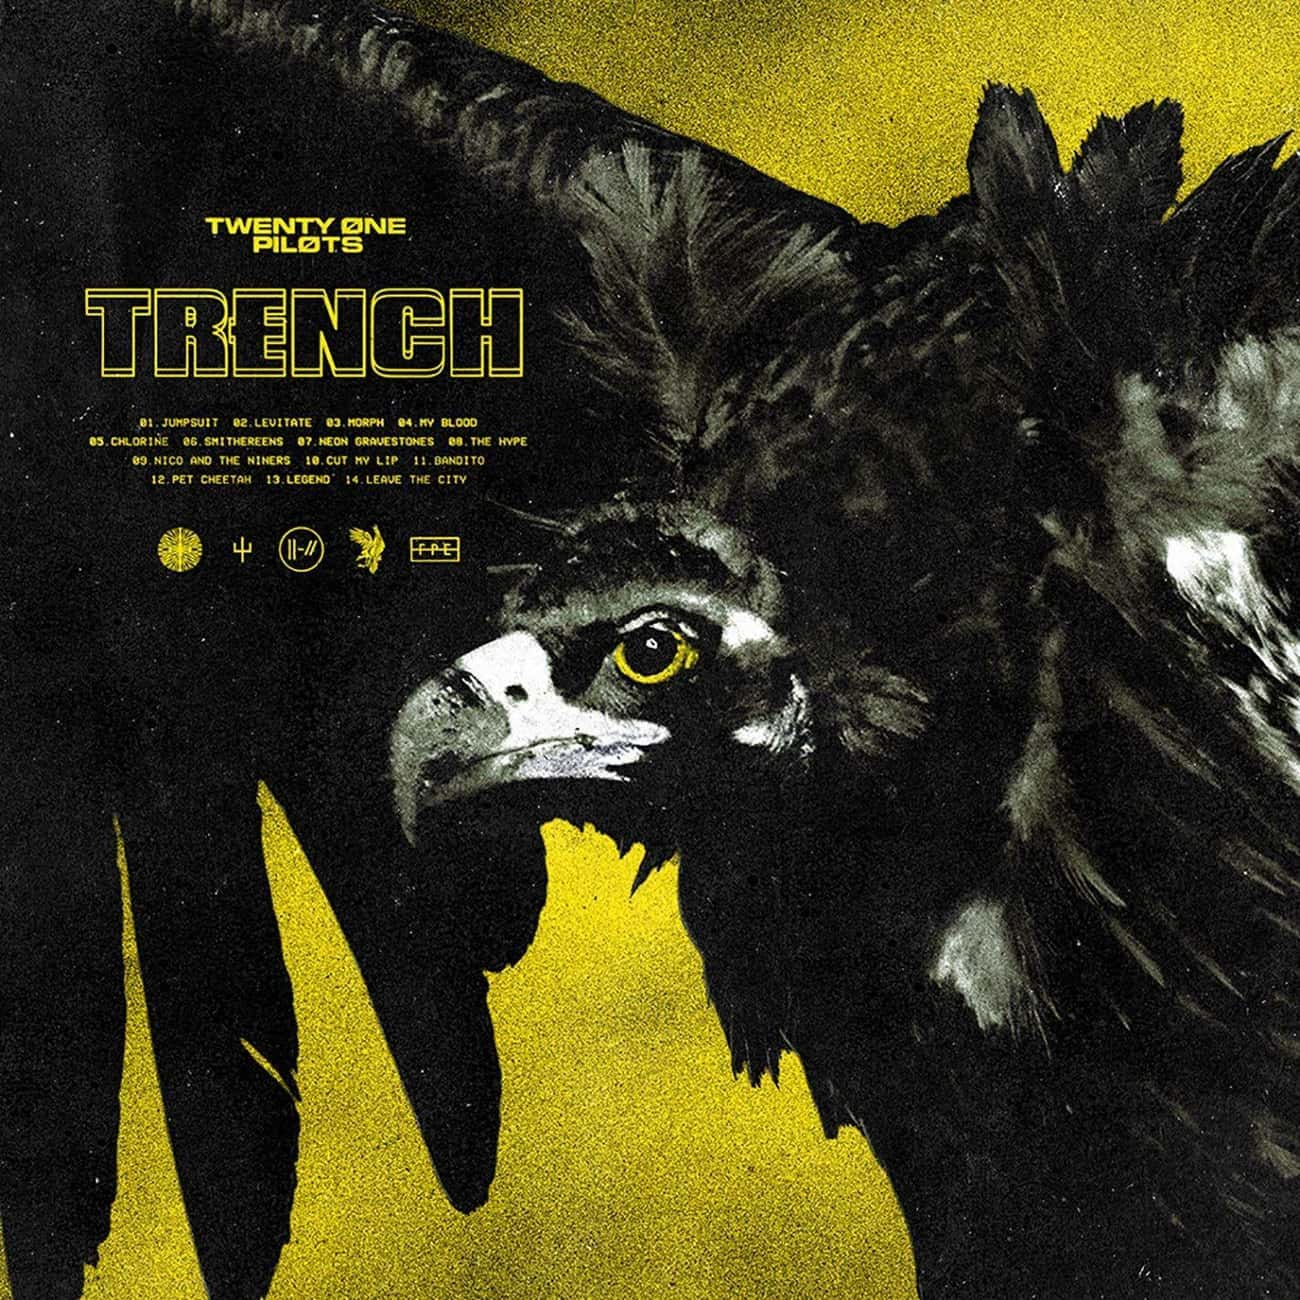 Trench  is listed (or ranked) 2 on the list The Best Twenty One Pilots Albums, Ranked